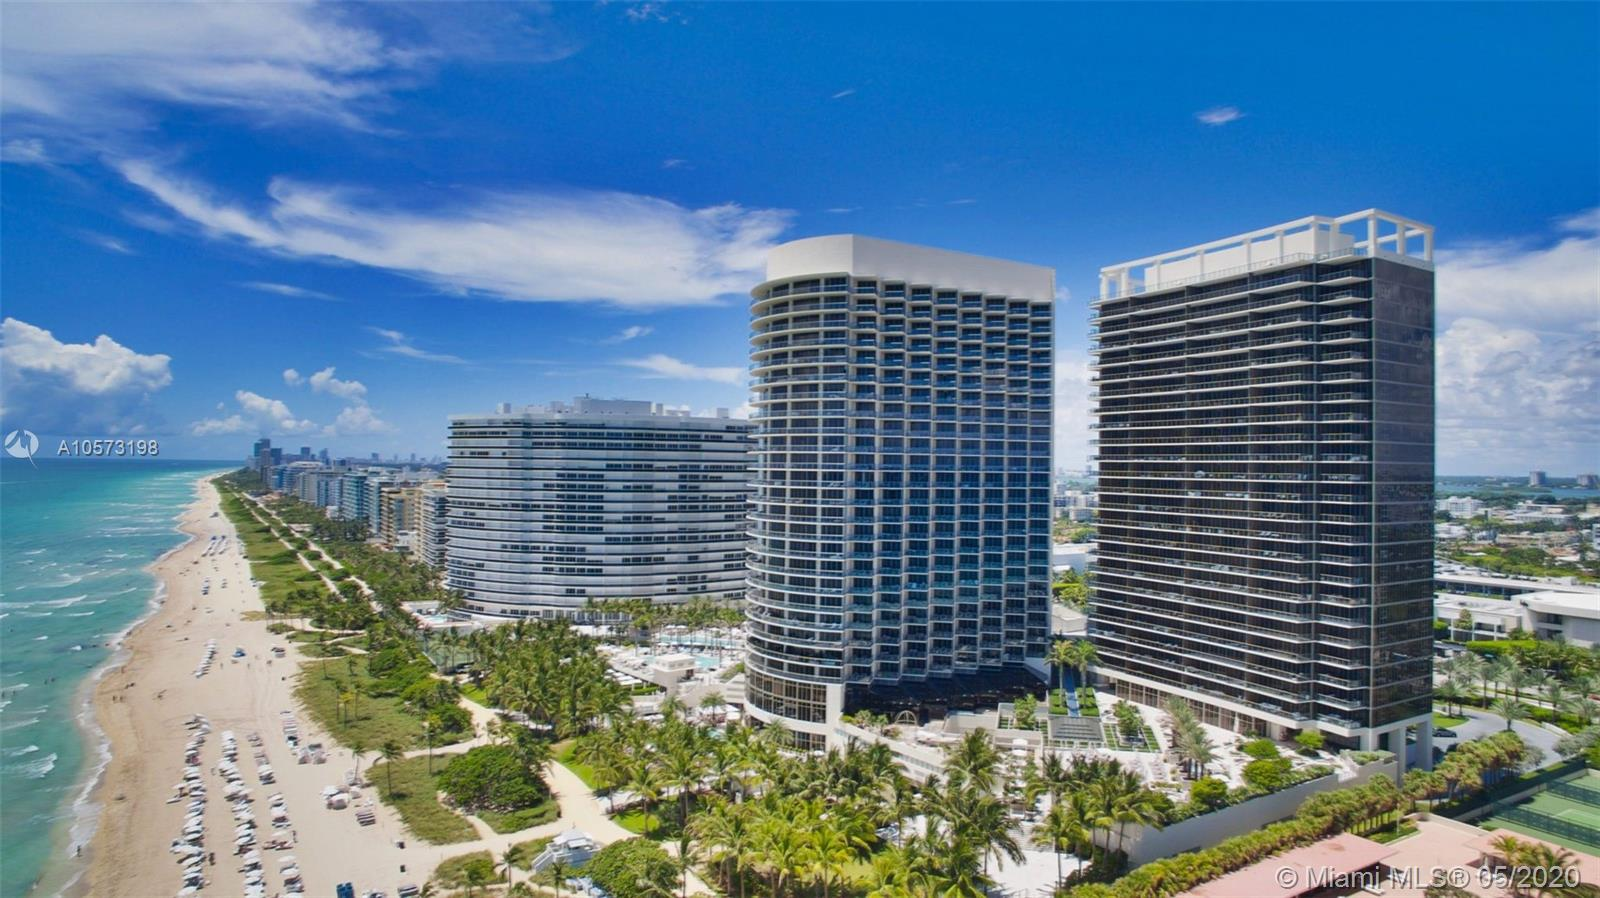 Photo of 9705 COLLINS AVE #903, Bal Harbour, Florida, 33154 - Pool next to the ocean